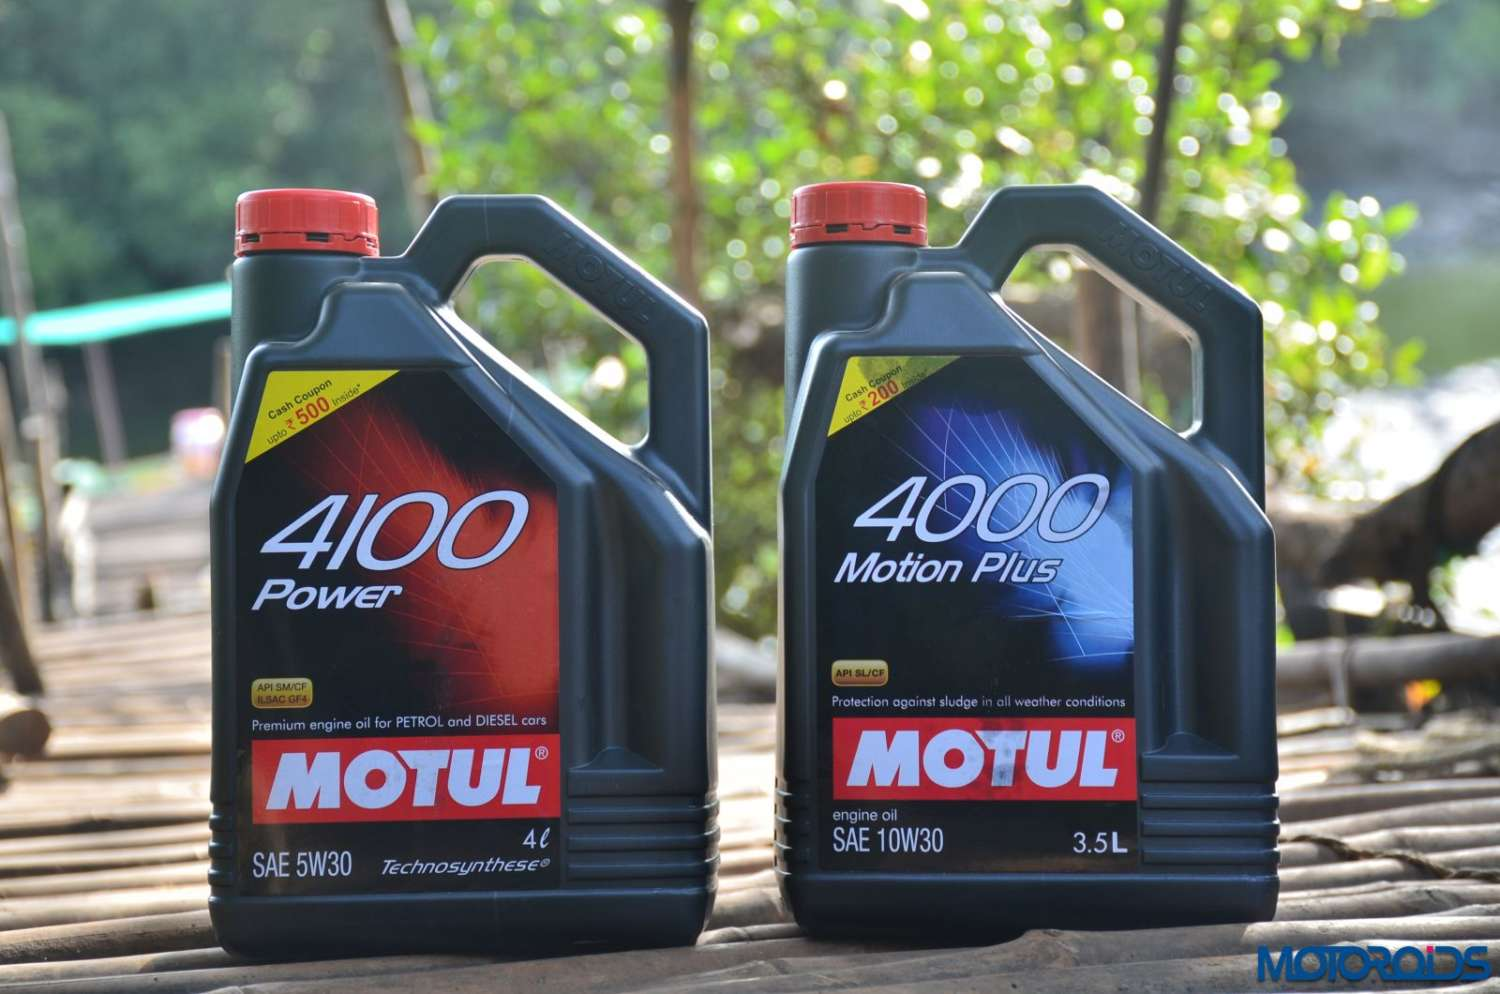 Motul All About Lubes : Why Choose 5w30 / 10w30 Over 20w50 For Your Cars? | Motoroids